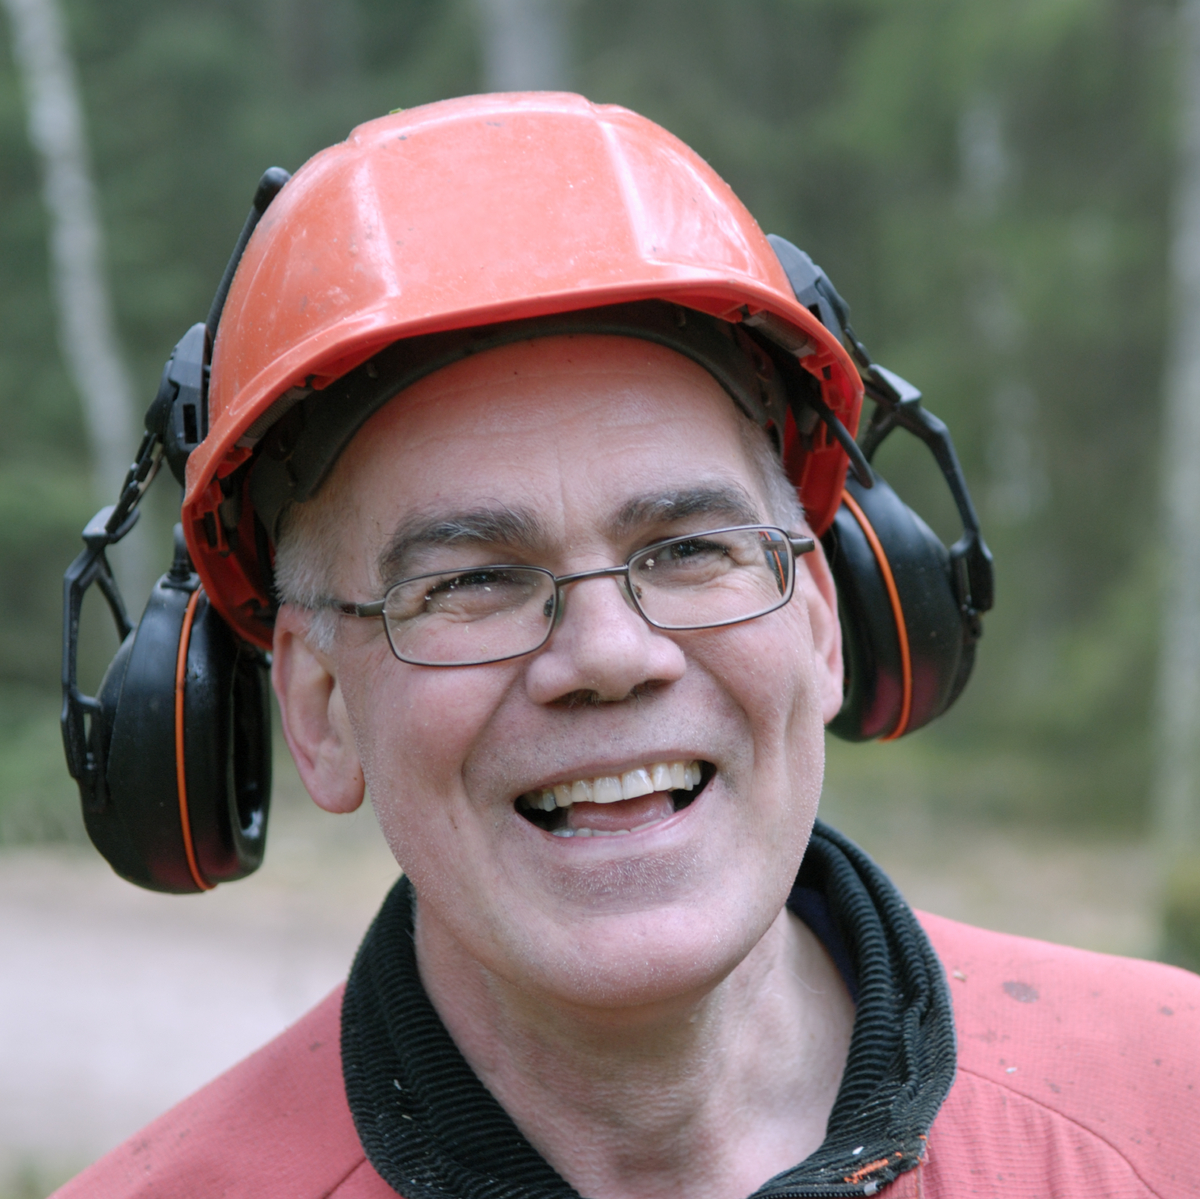 man with a hard hat and ear protection